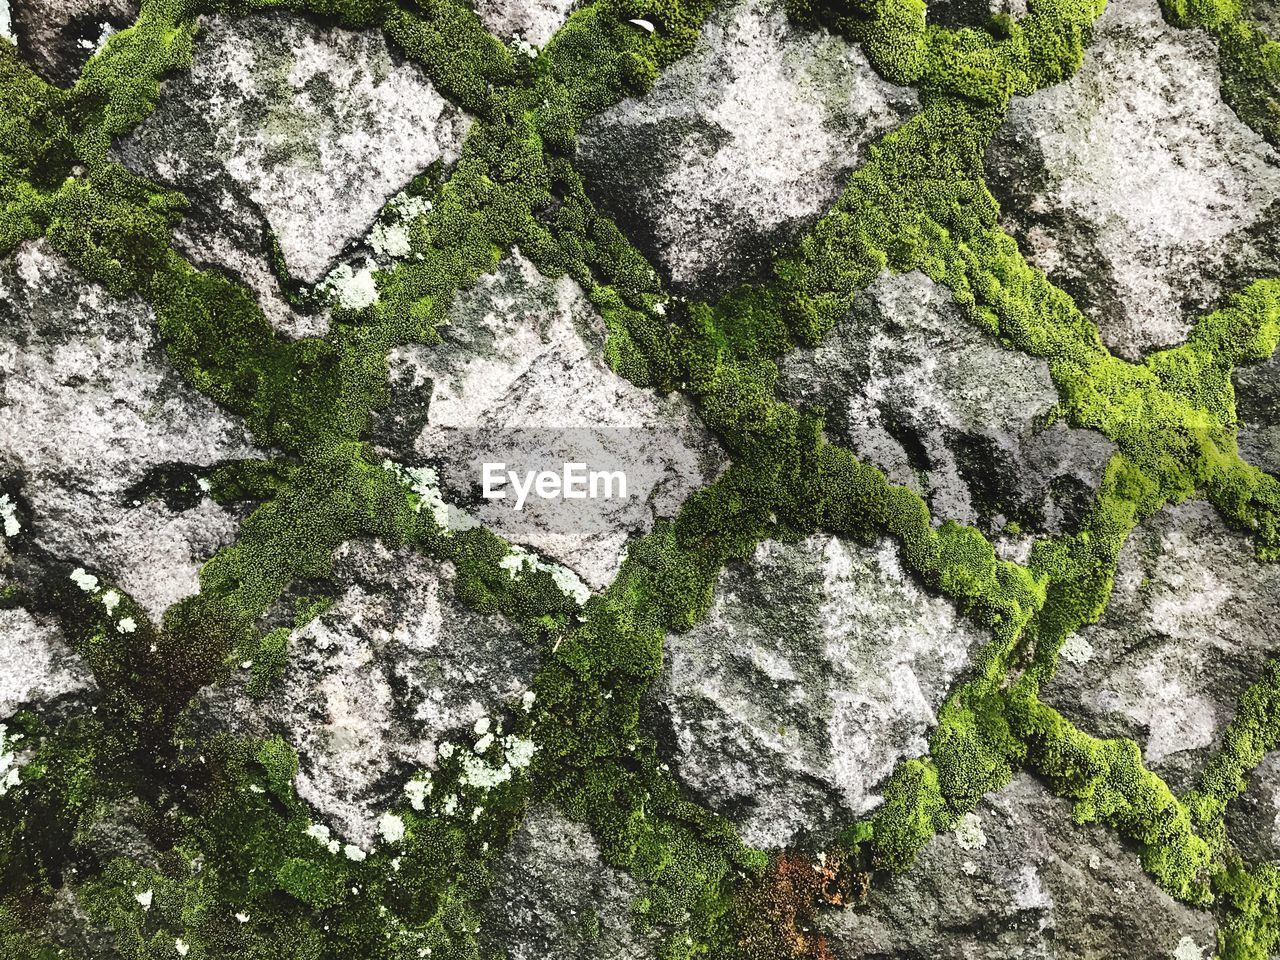 rock - object, day, outdoors, no people, green color, moss, high angle view, nature, textured, full frame, close-up